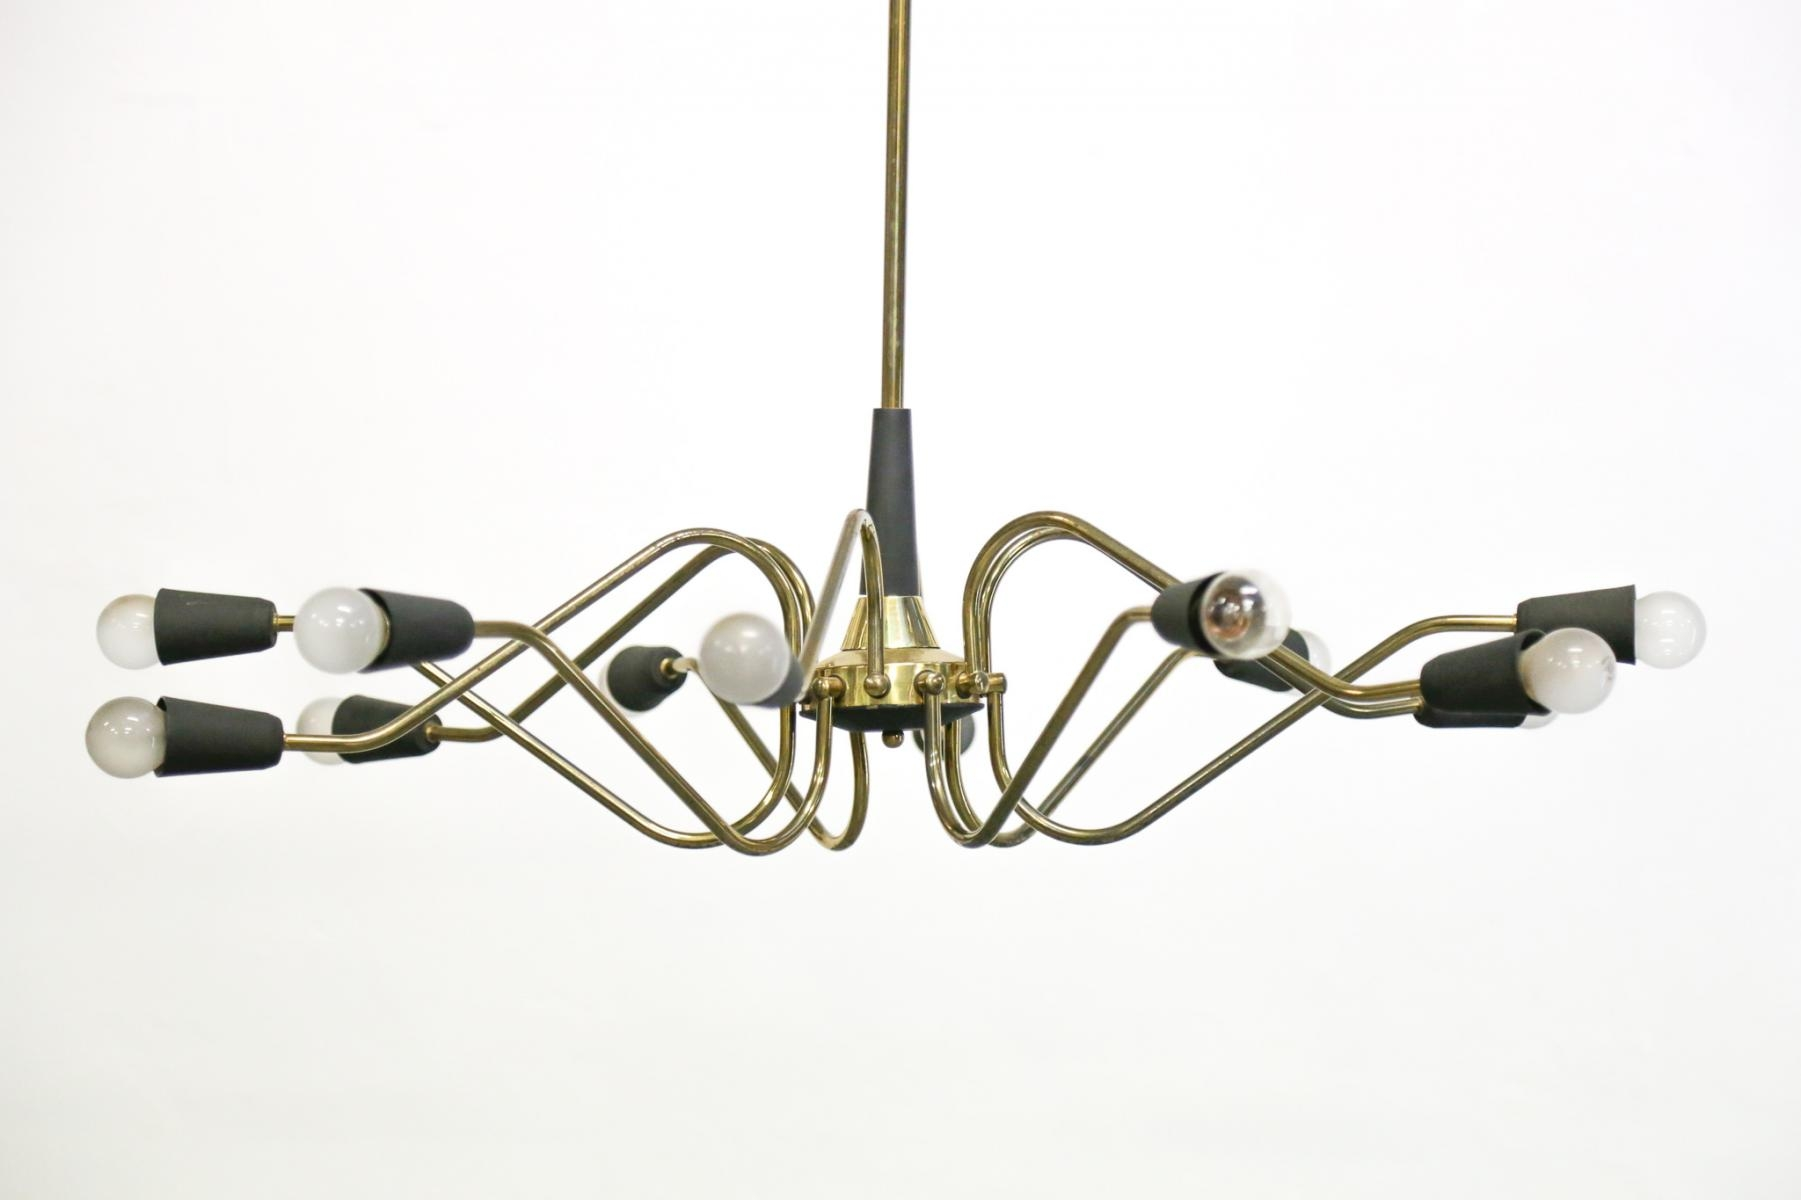 Vintage Italian Chandelier From Stilnovo For Sale At Pamono Within Vintage Italian Chandeliers (Image 12 of 15)